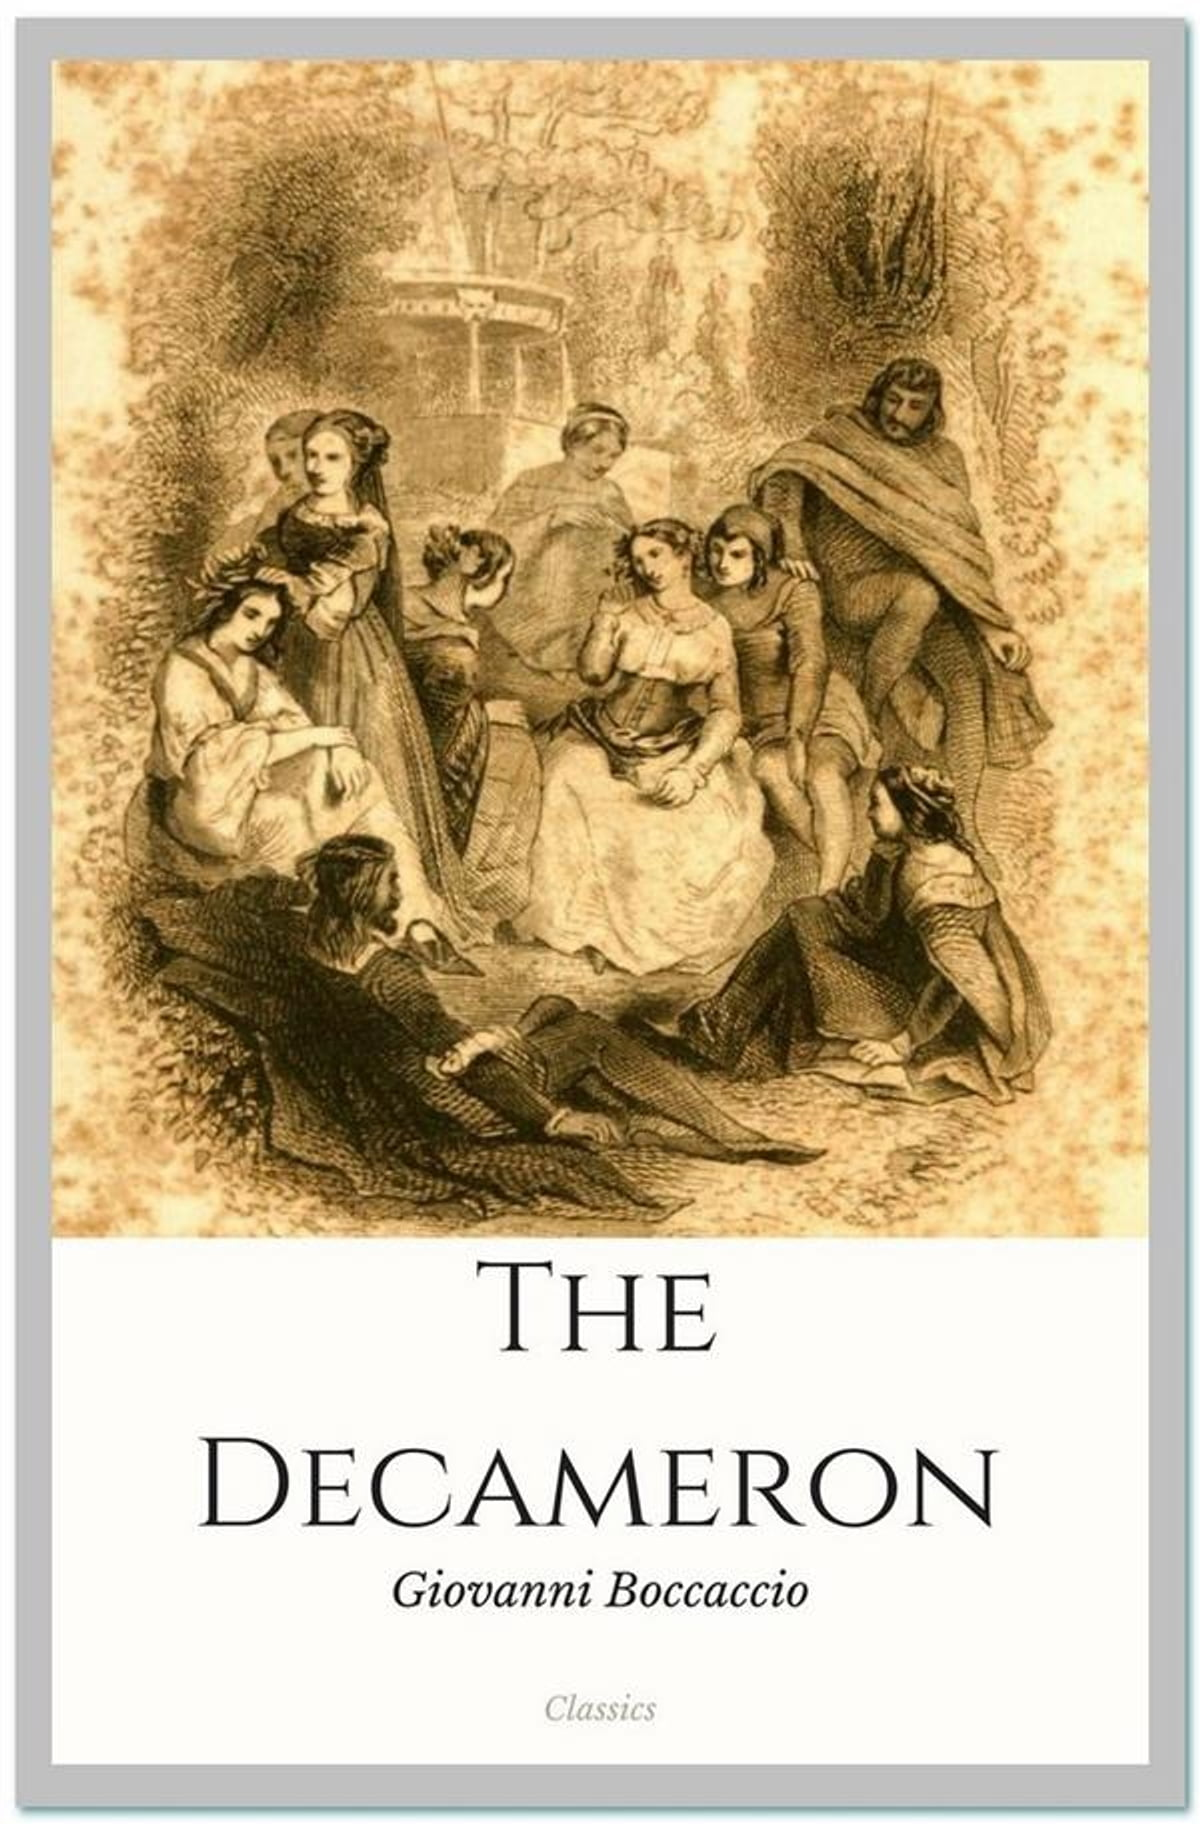 the decameron by giovanni boccaccio The decameron by giovanni boccaccio essay sample plague as dehumanization of florentine society it is necessary to outline that the decameron by boccaccio is one of the best remarkable and touching portraying of the plague in the medieval history.